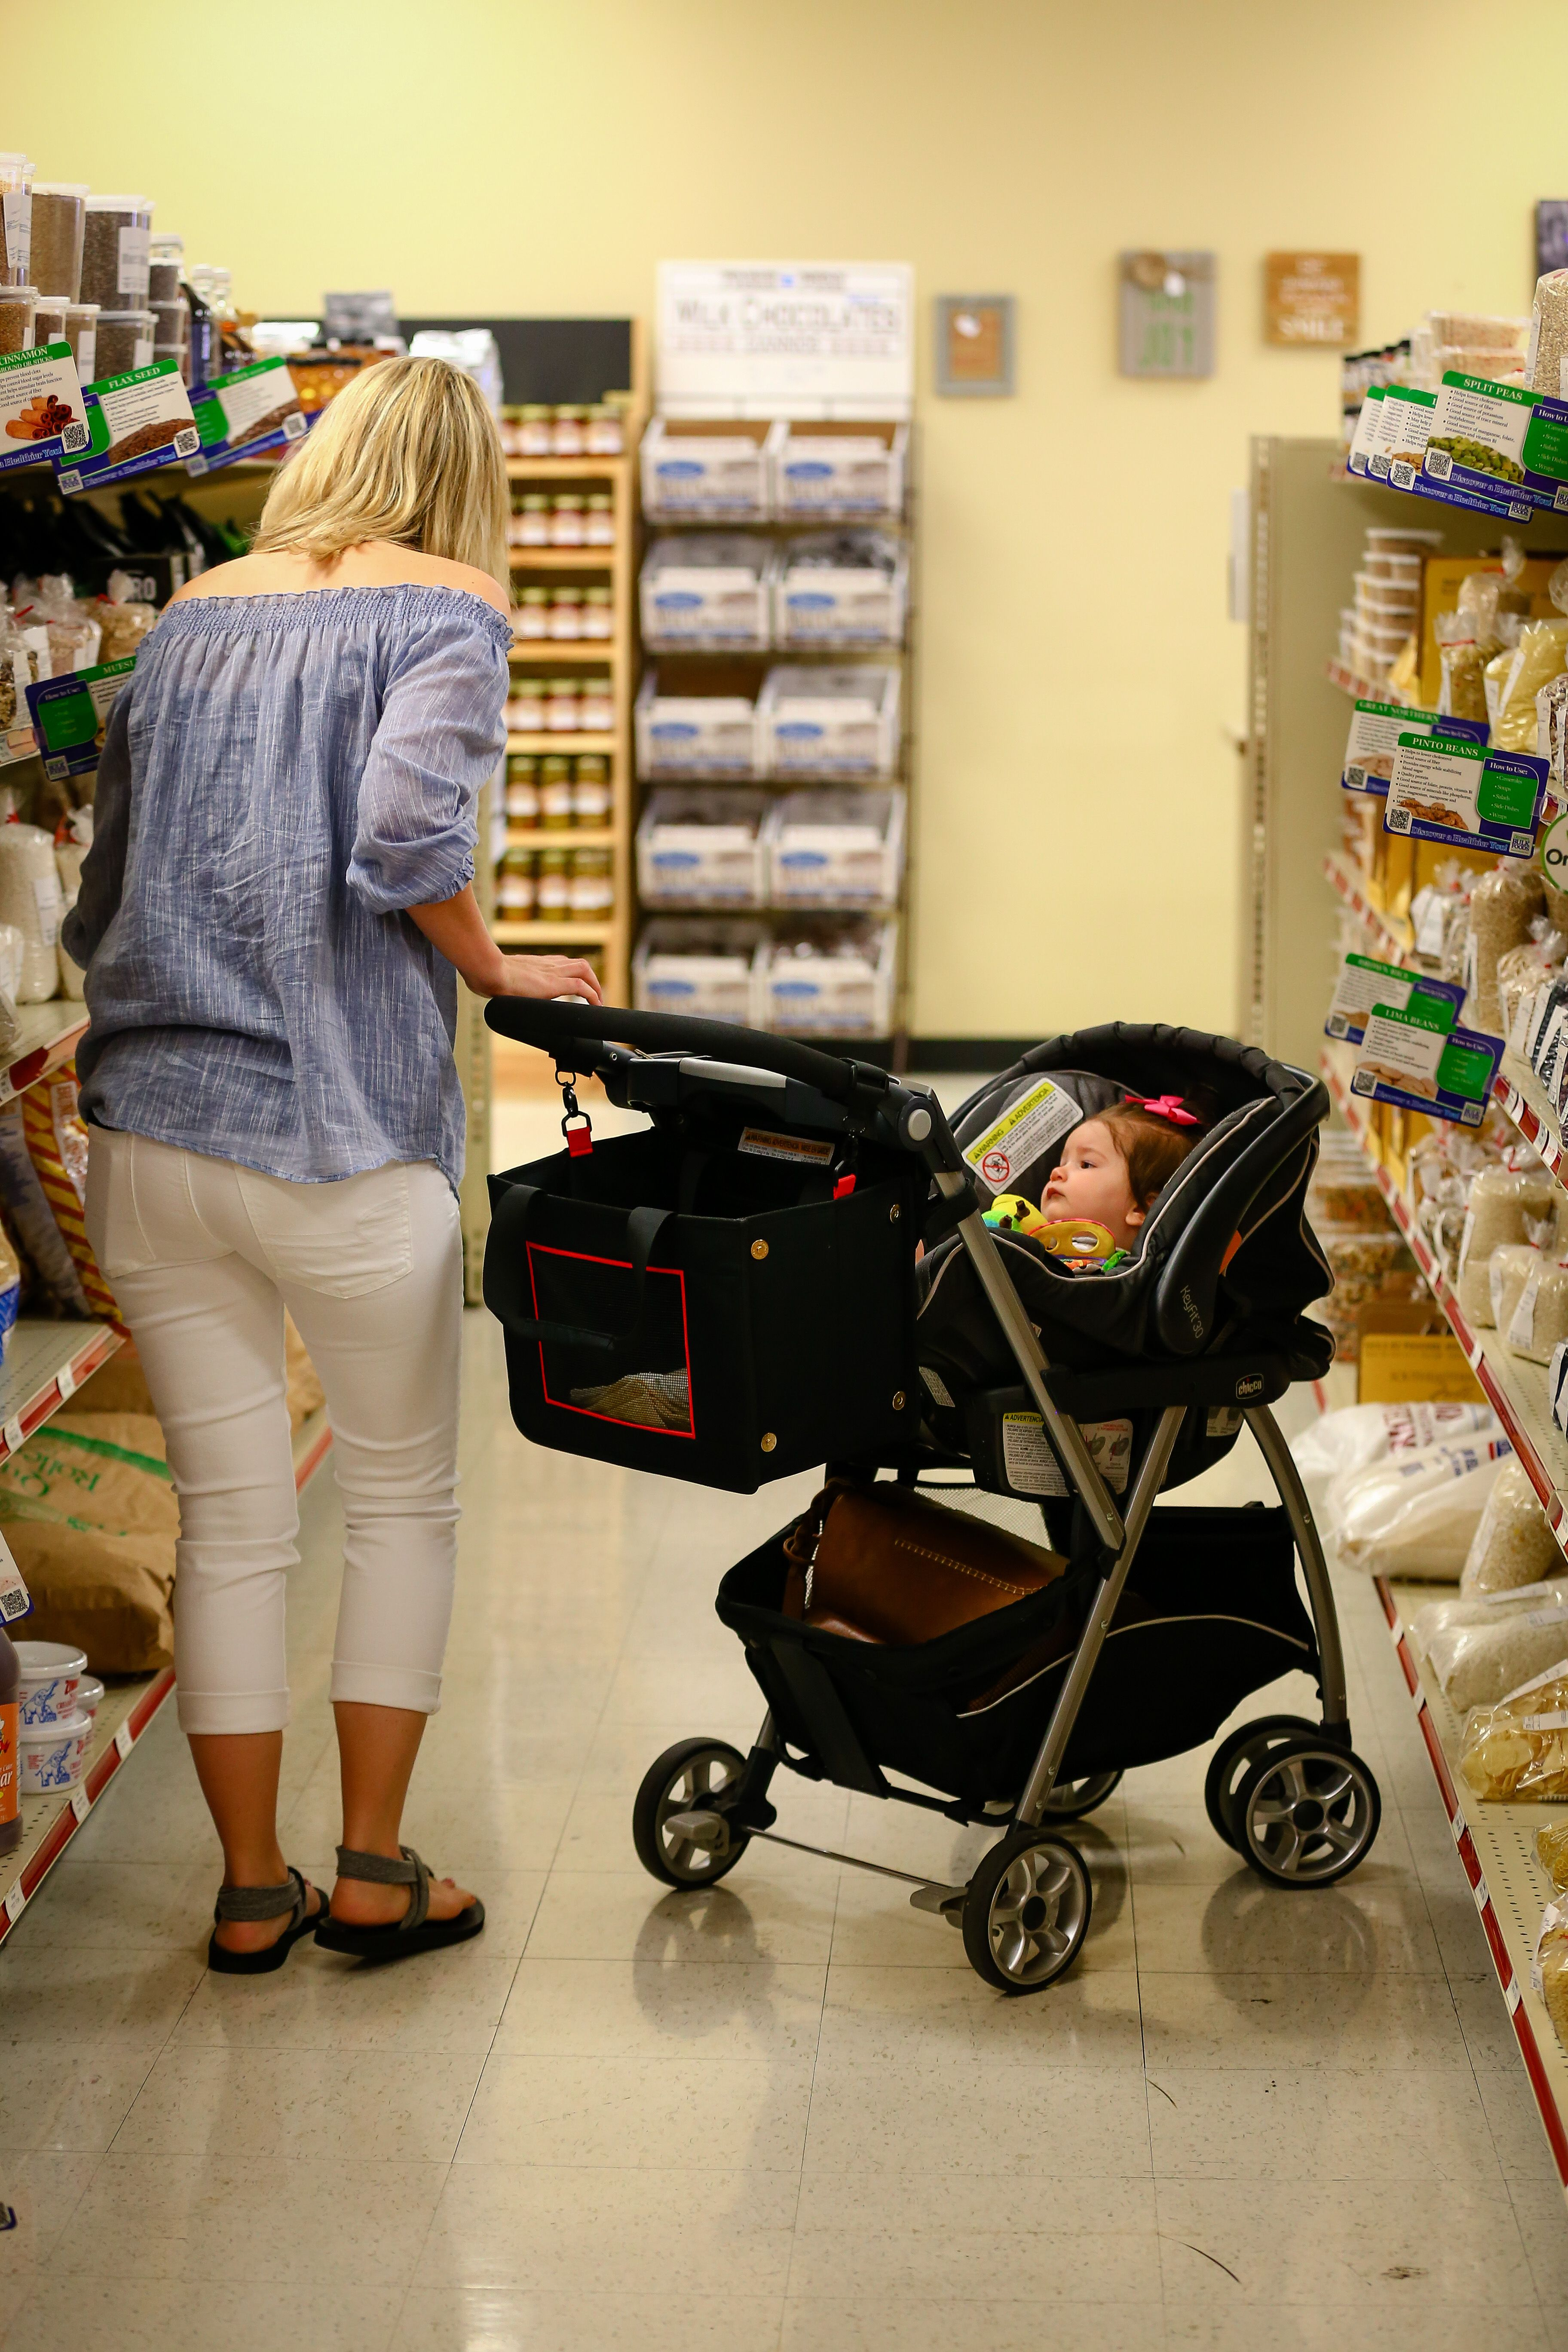 No more putting the baby carrier on the shopping cart